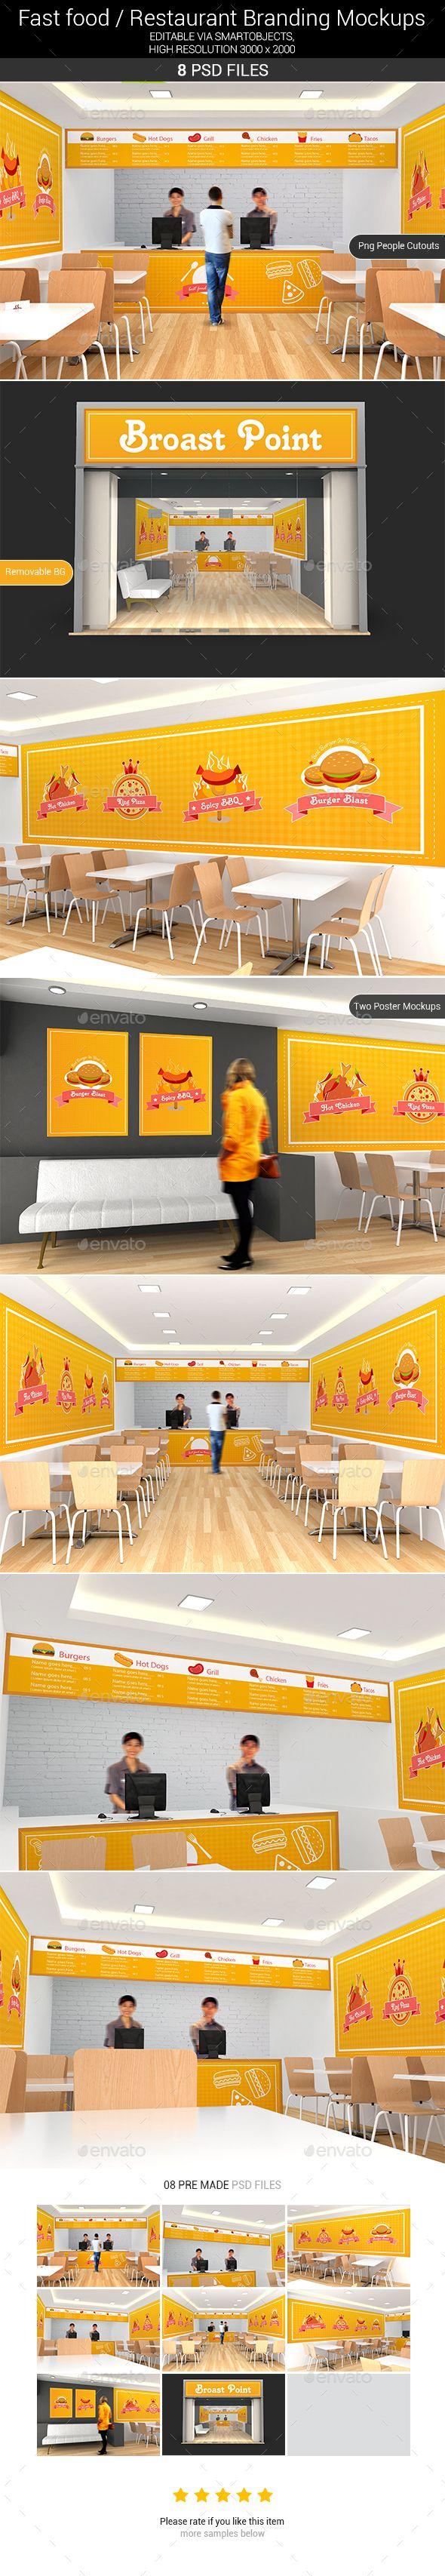 Presenting Fast food / Restaurant Interior branding mockups, this mockup specially focuses around the looks and branding of the interiors. This Mockup is perfect for any food outlet, Restaurants, Fast food Courts, Bistros, cafes etc. It's easy! You just need to double-click the Smart-Object, paste your artwork, save, and you're done.